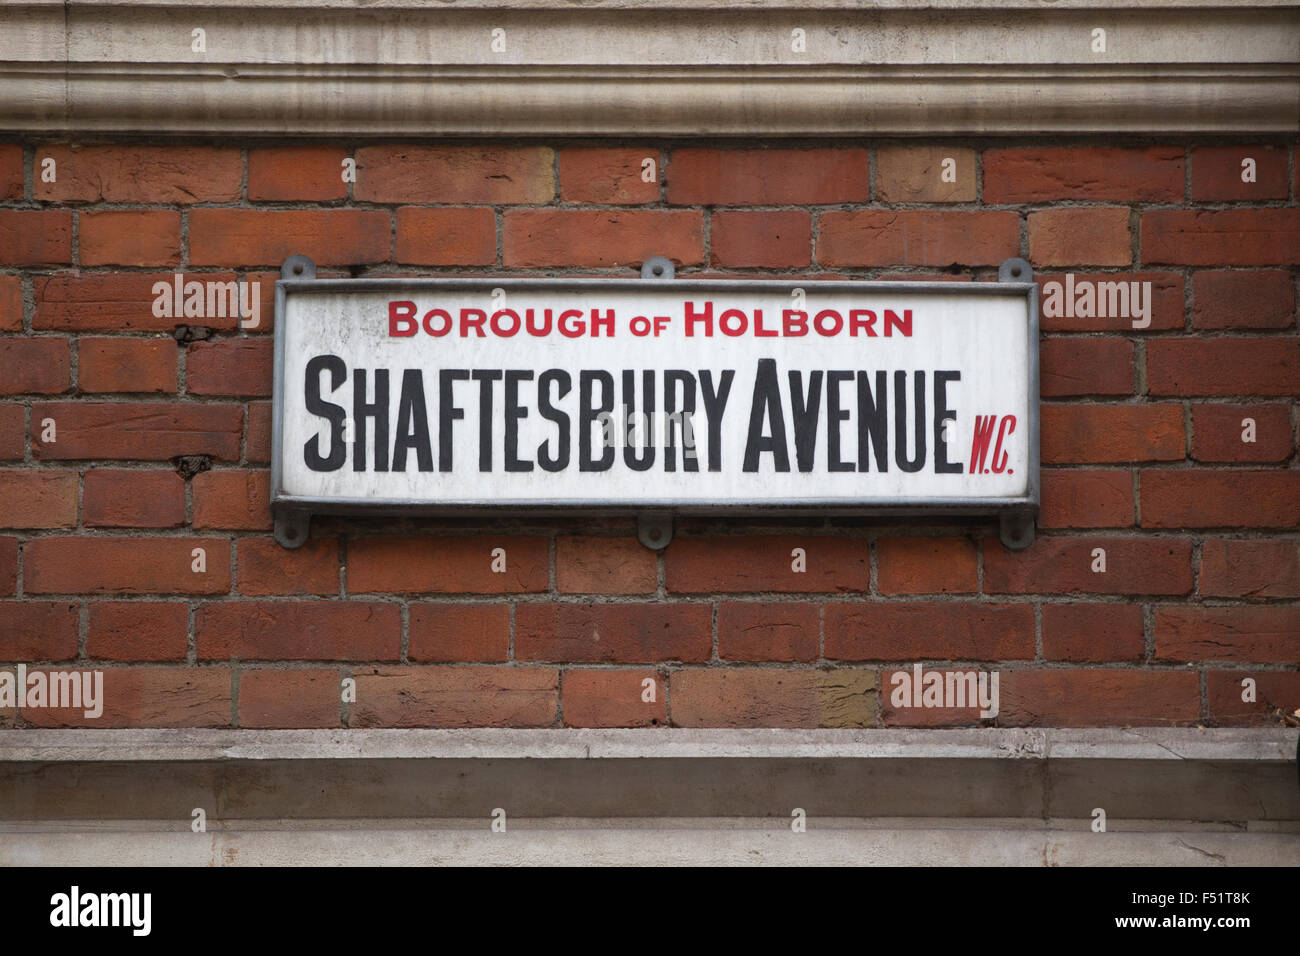 Shaftesbury Avenue, West End, London, England, United Kingdom - Stock Image